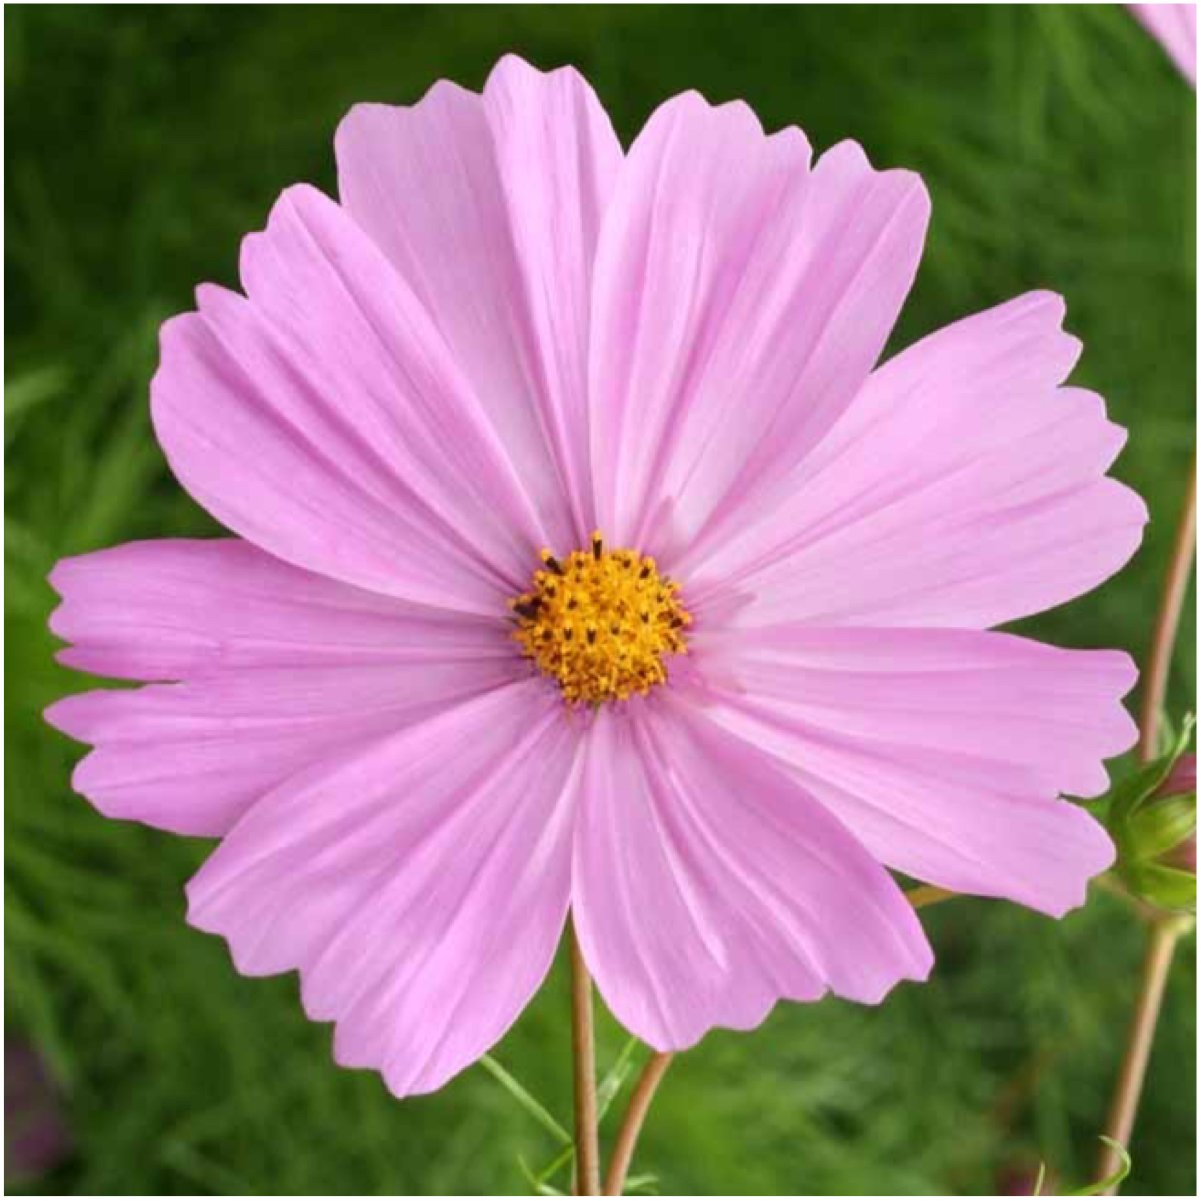 Amazon.com : Seed Needs Cosmos Wildflower Seed Packet Collection (12 ...